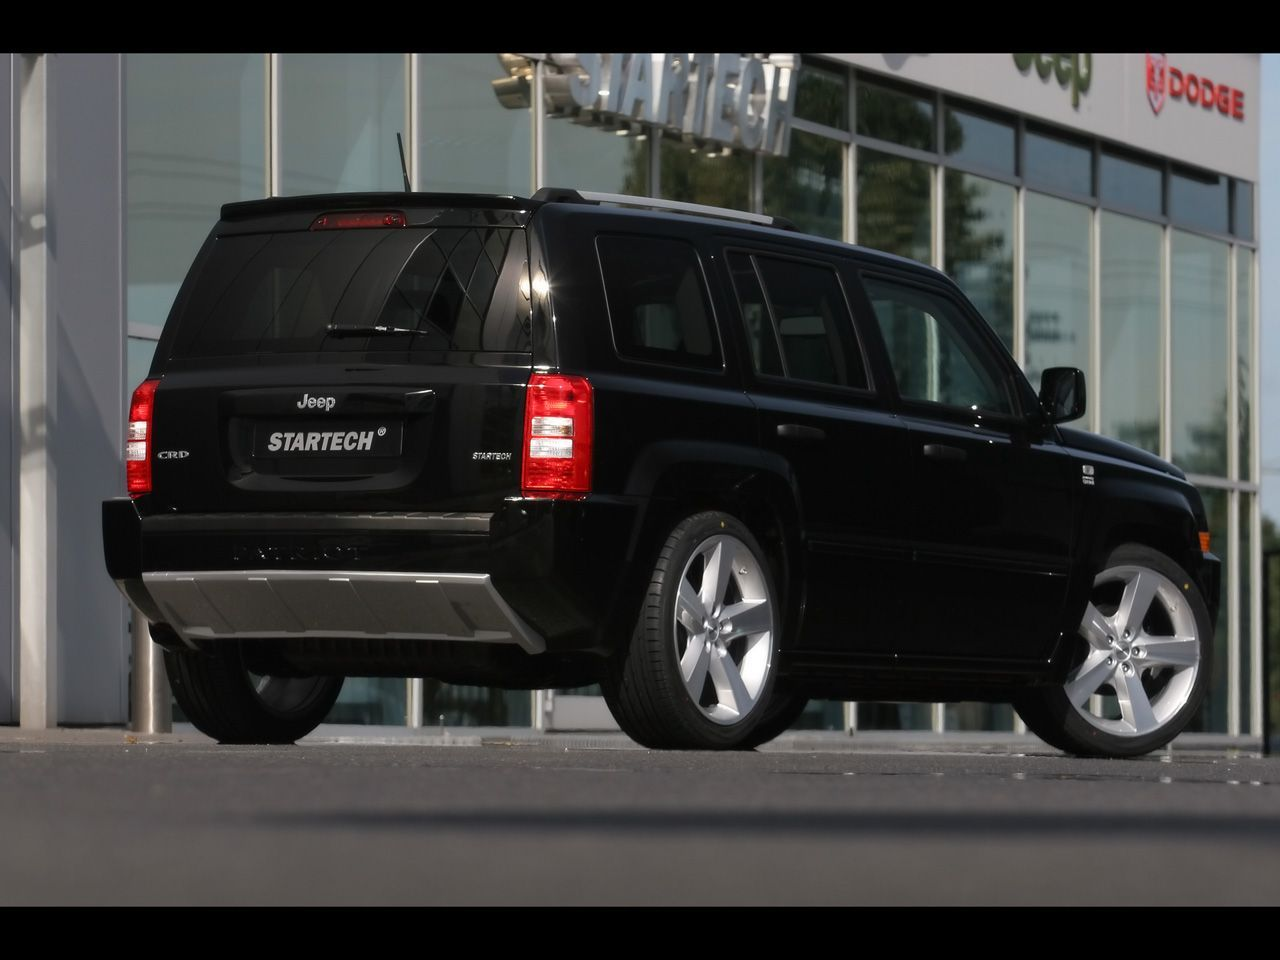 Startech Jeep Patriot 2008